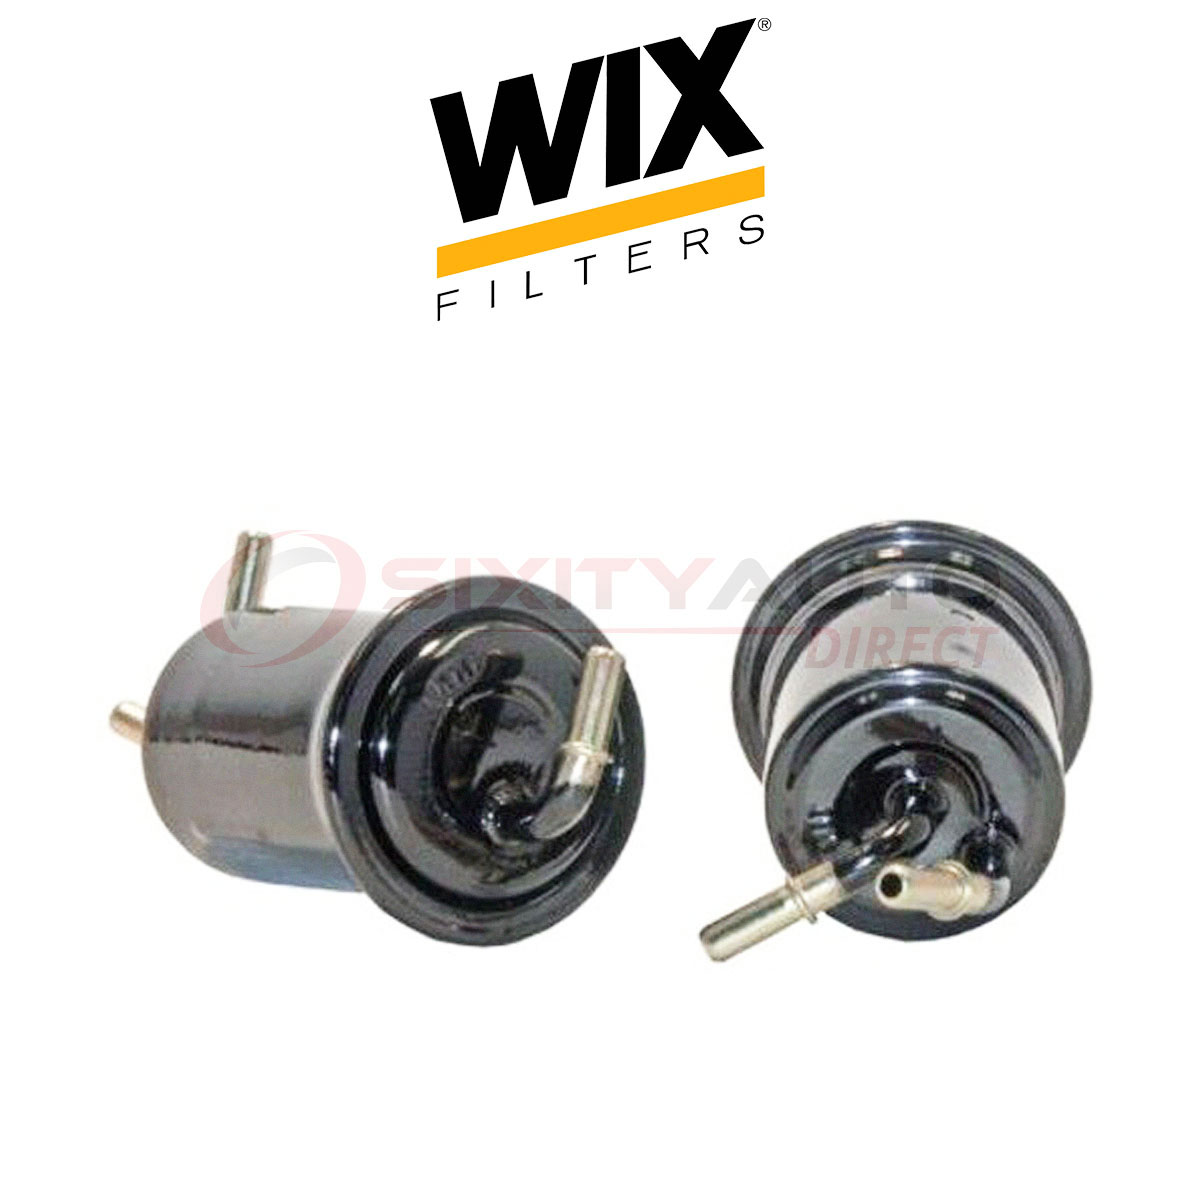 WIX Fuel Filter for 1998-2001 Kia Sephia 1.8L L4 - Gas ...